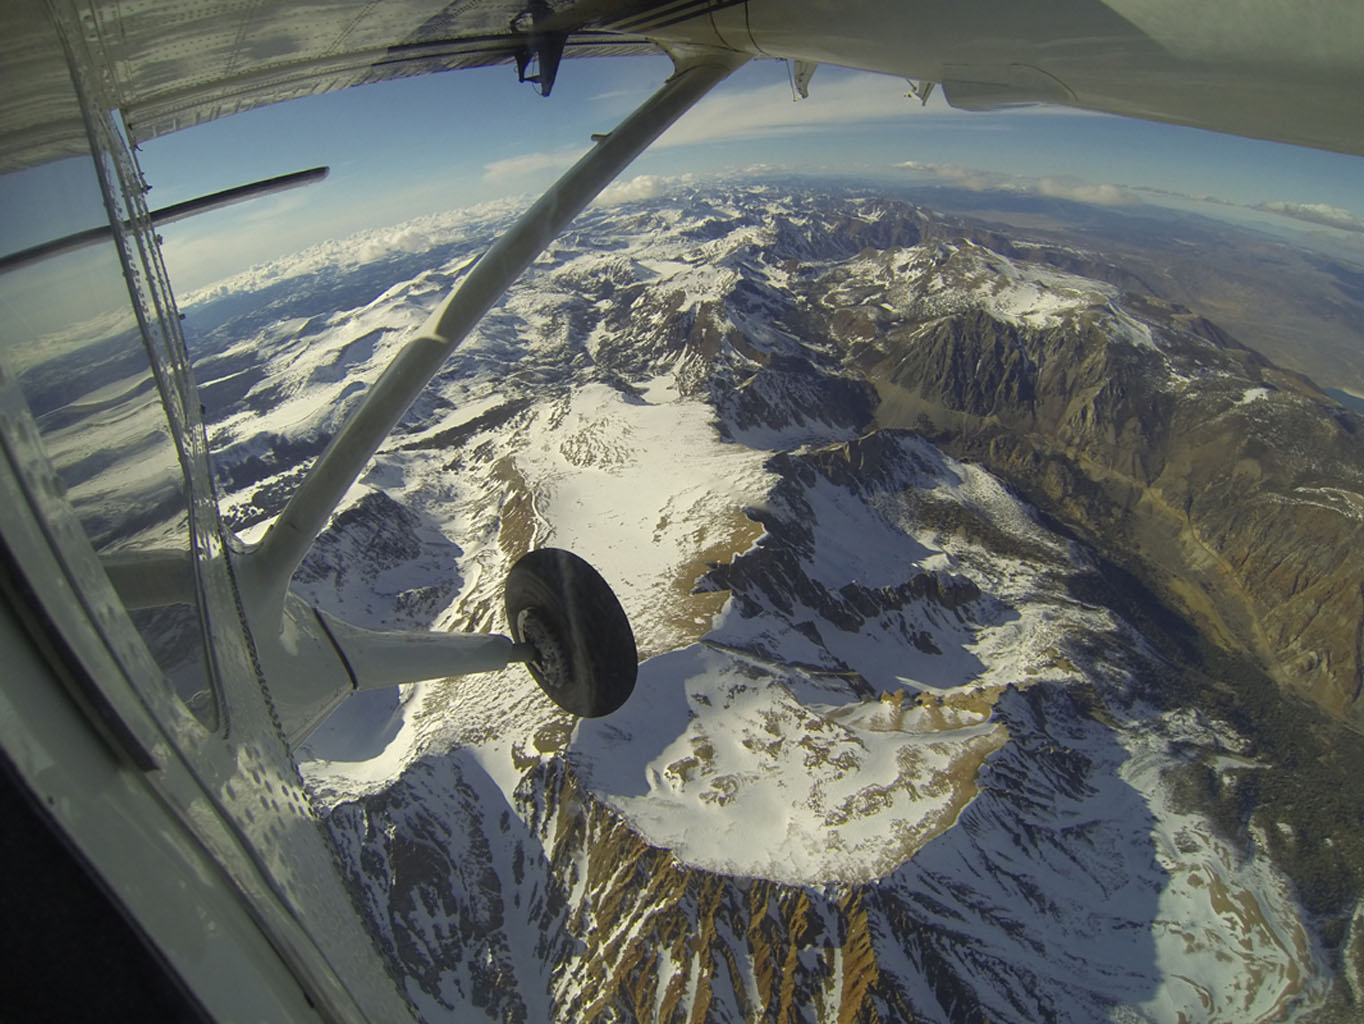 Mt. Dana and Dana Plateau in the Tuolumne River Basin within Yosemite National Park, Calif., as seen out the window of a Twin Otter aircraft carrying NASA's Airborne Snow Observatory on April 3, 2013.